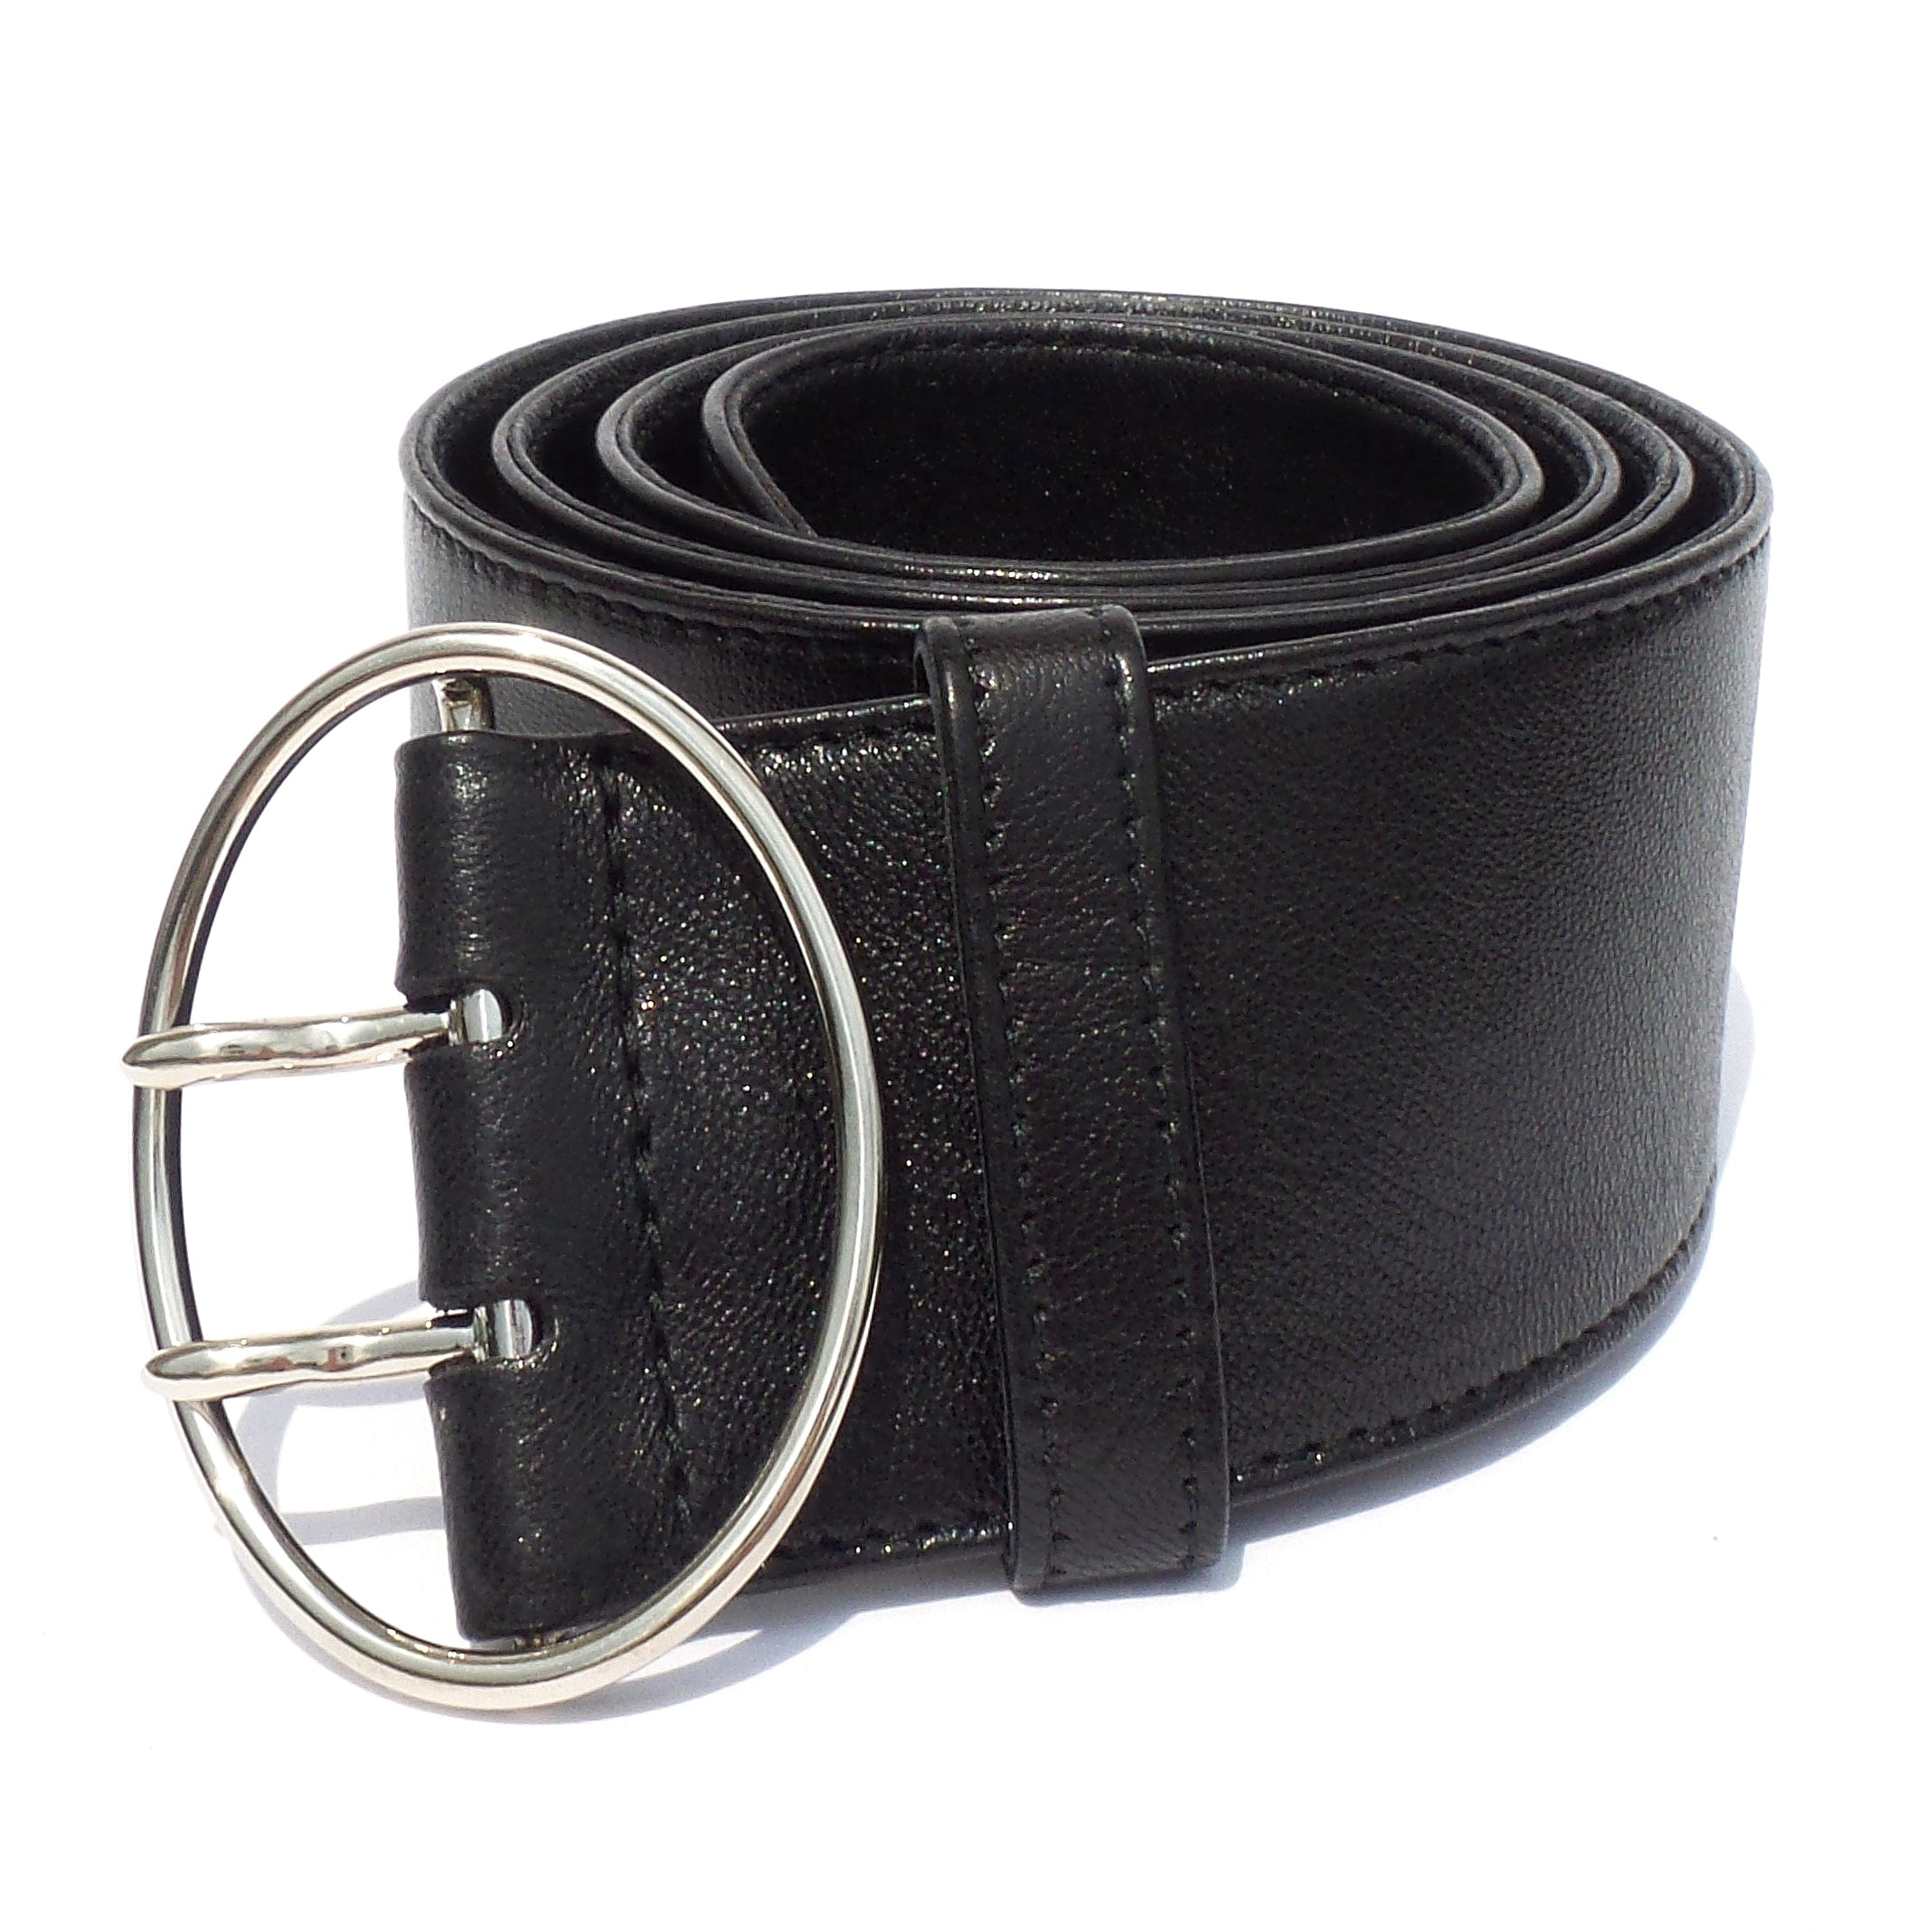 PRADA 1C5903 Black Leather Silver Oval Double Prong Buckle Wide Belt 85cm 34 EC